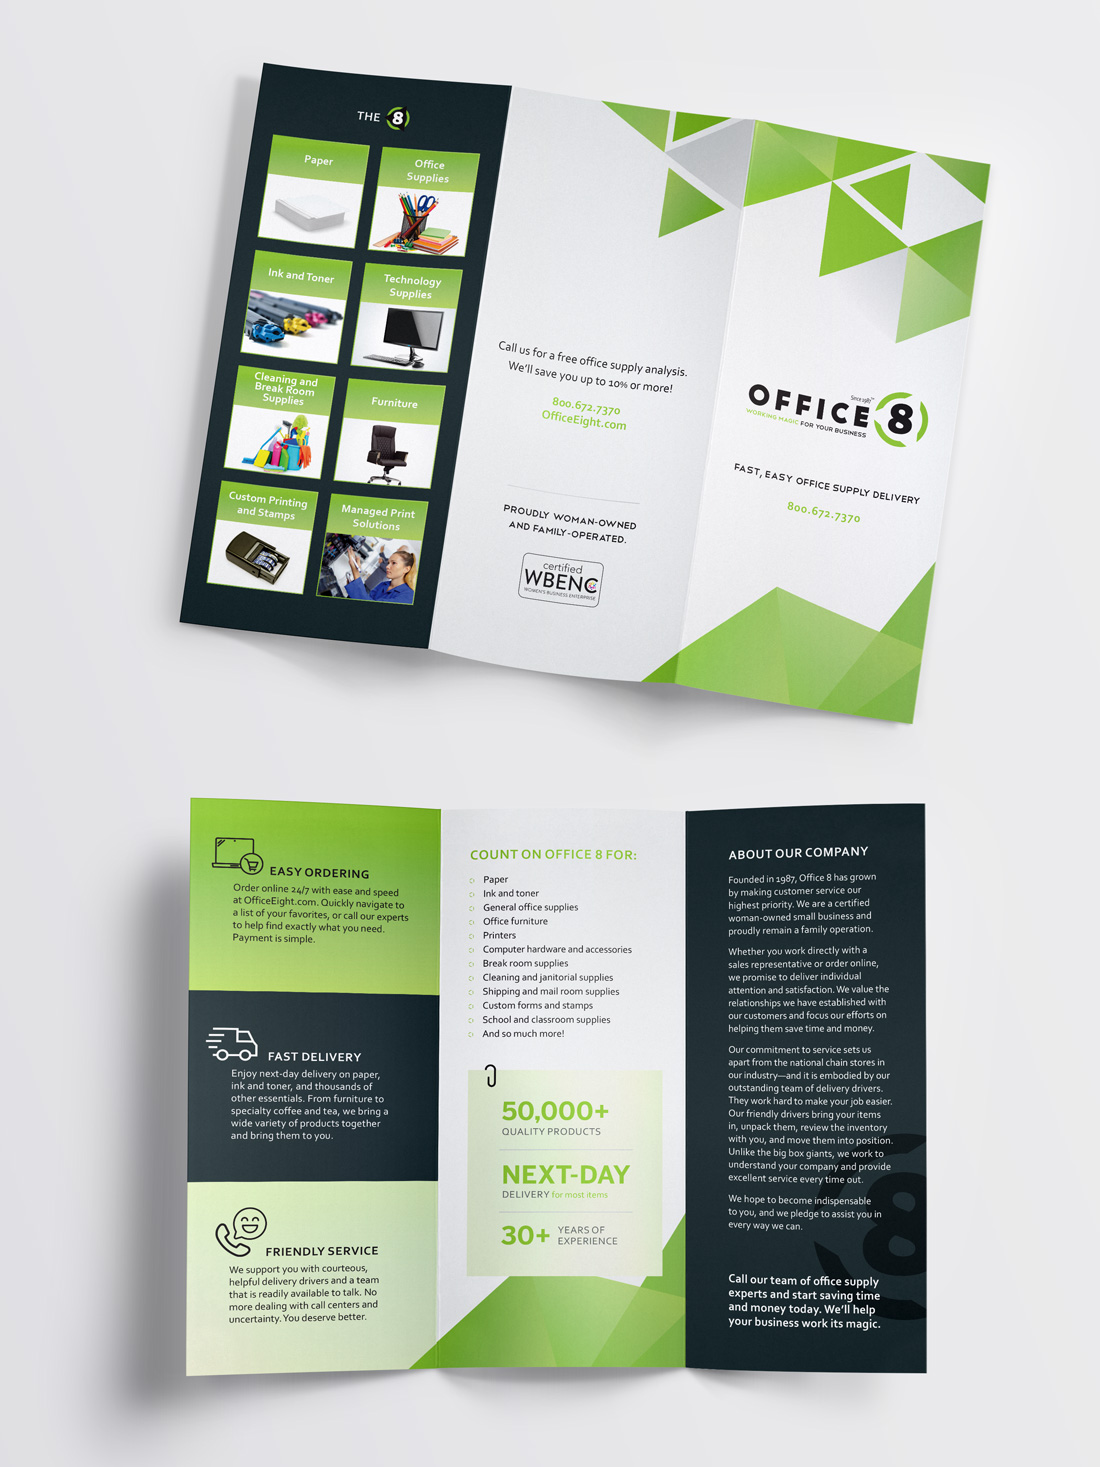 Office 8 Brochure